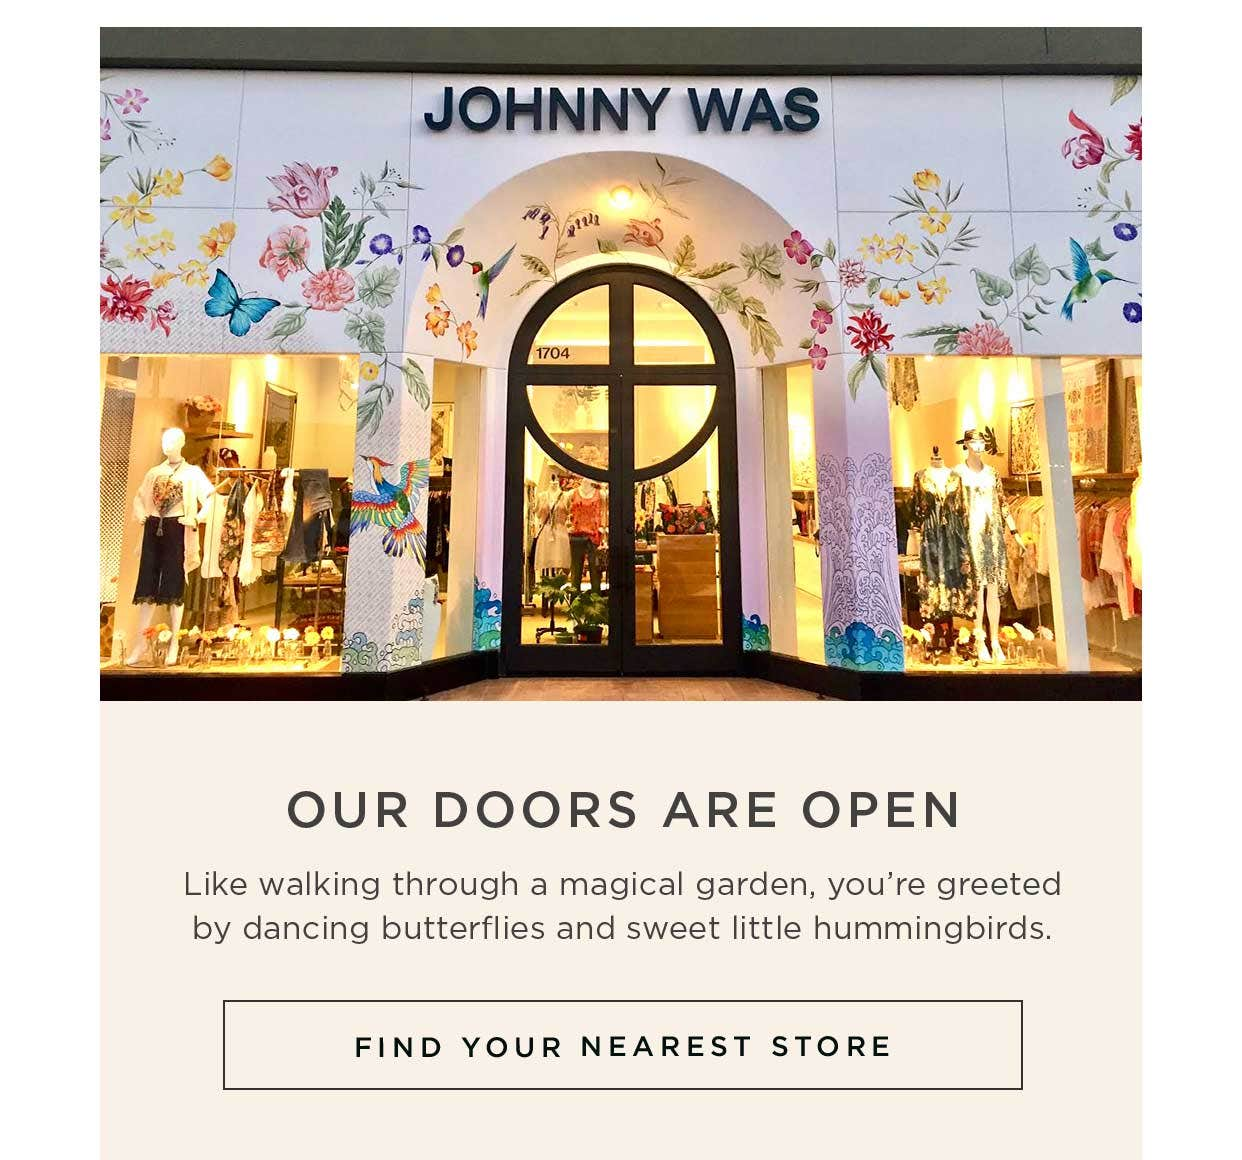 Our Doors are Open - Like walking through a magical garden, you're greeted by dancing butterflies and sweet little hummingbirds. Find Your Nearest Store.